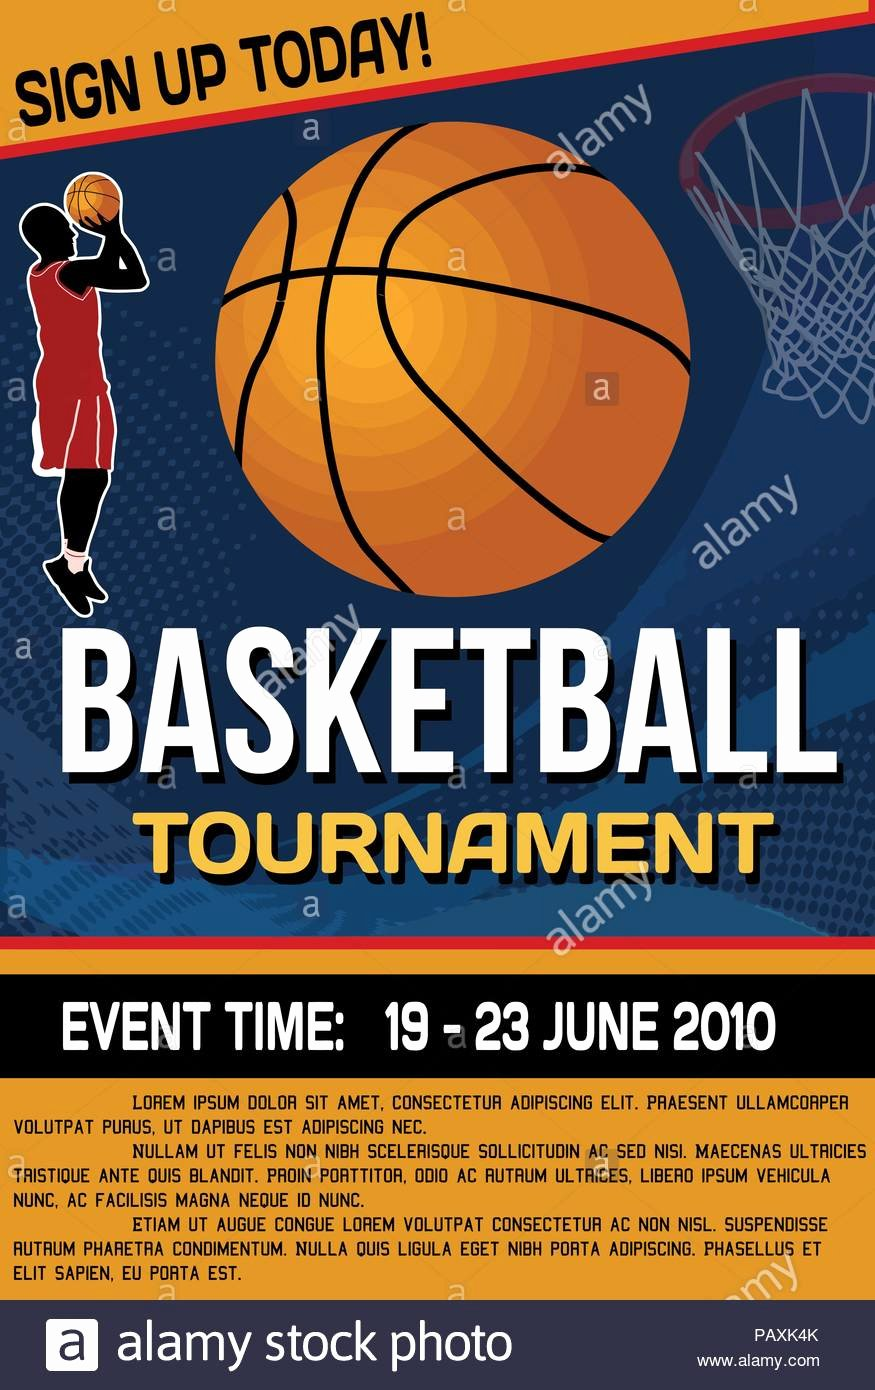 Basketball tournament Flyer or Poster Background Vector